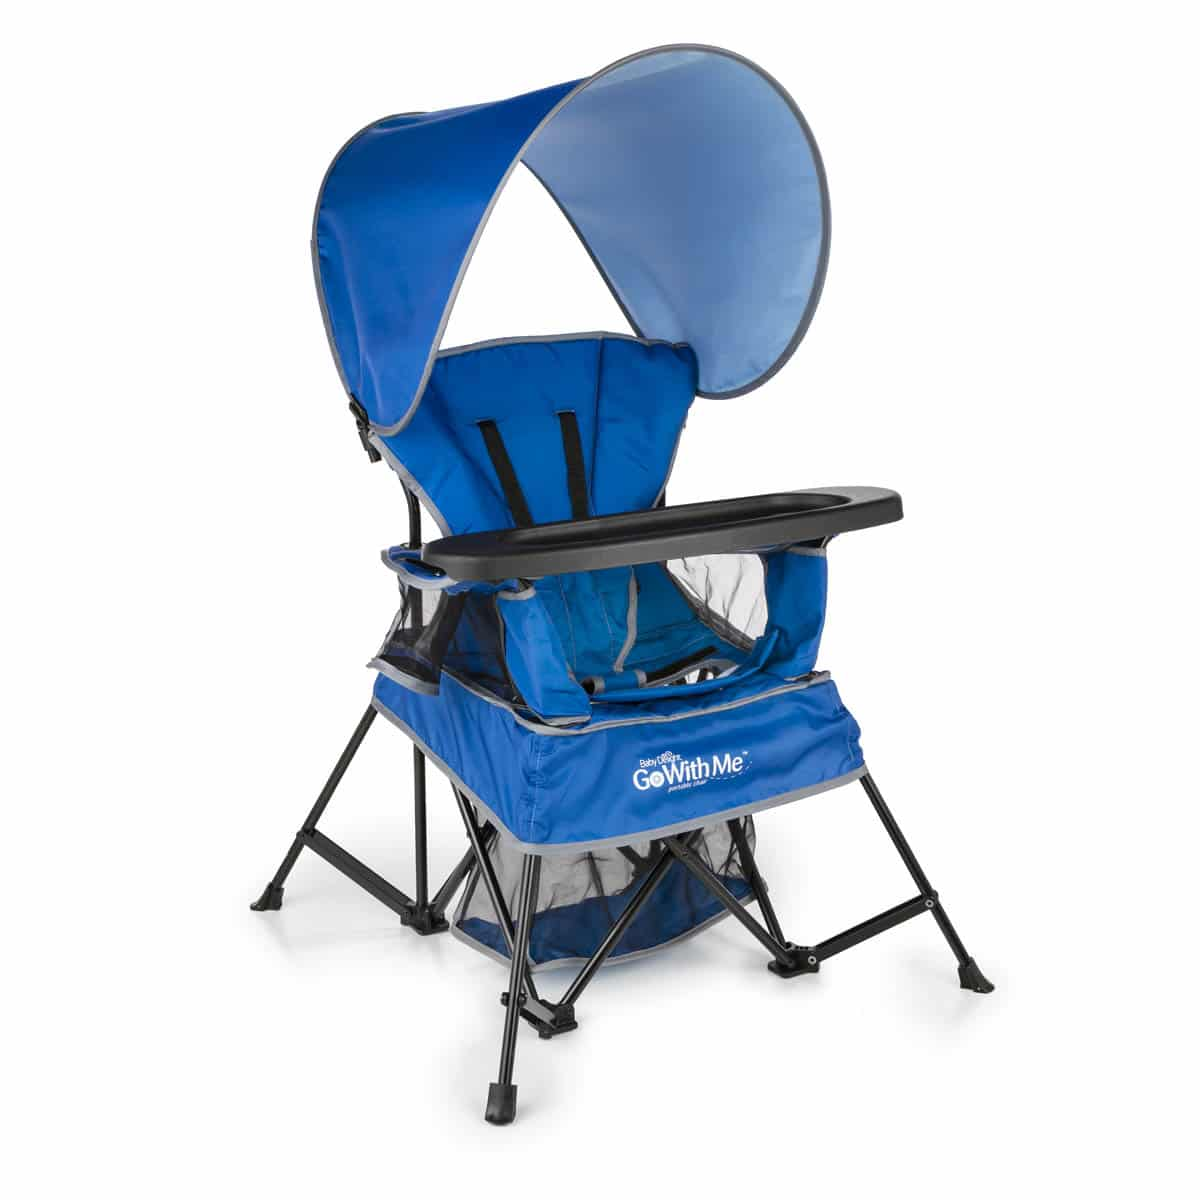 Go With Me Chair Blue Baby Delight Inc